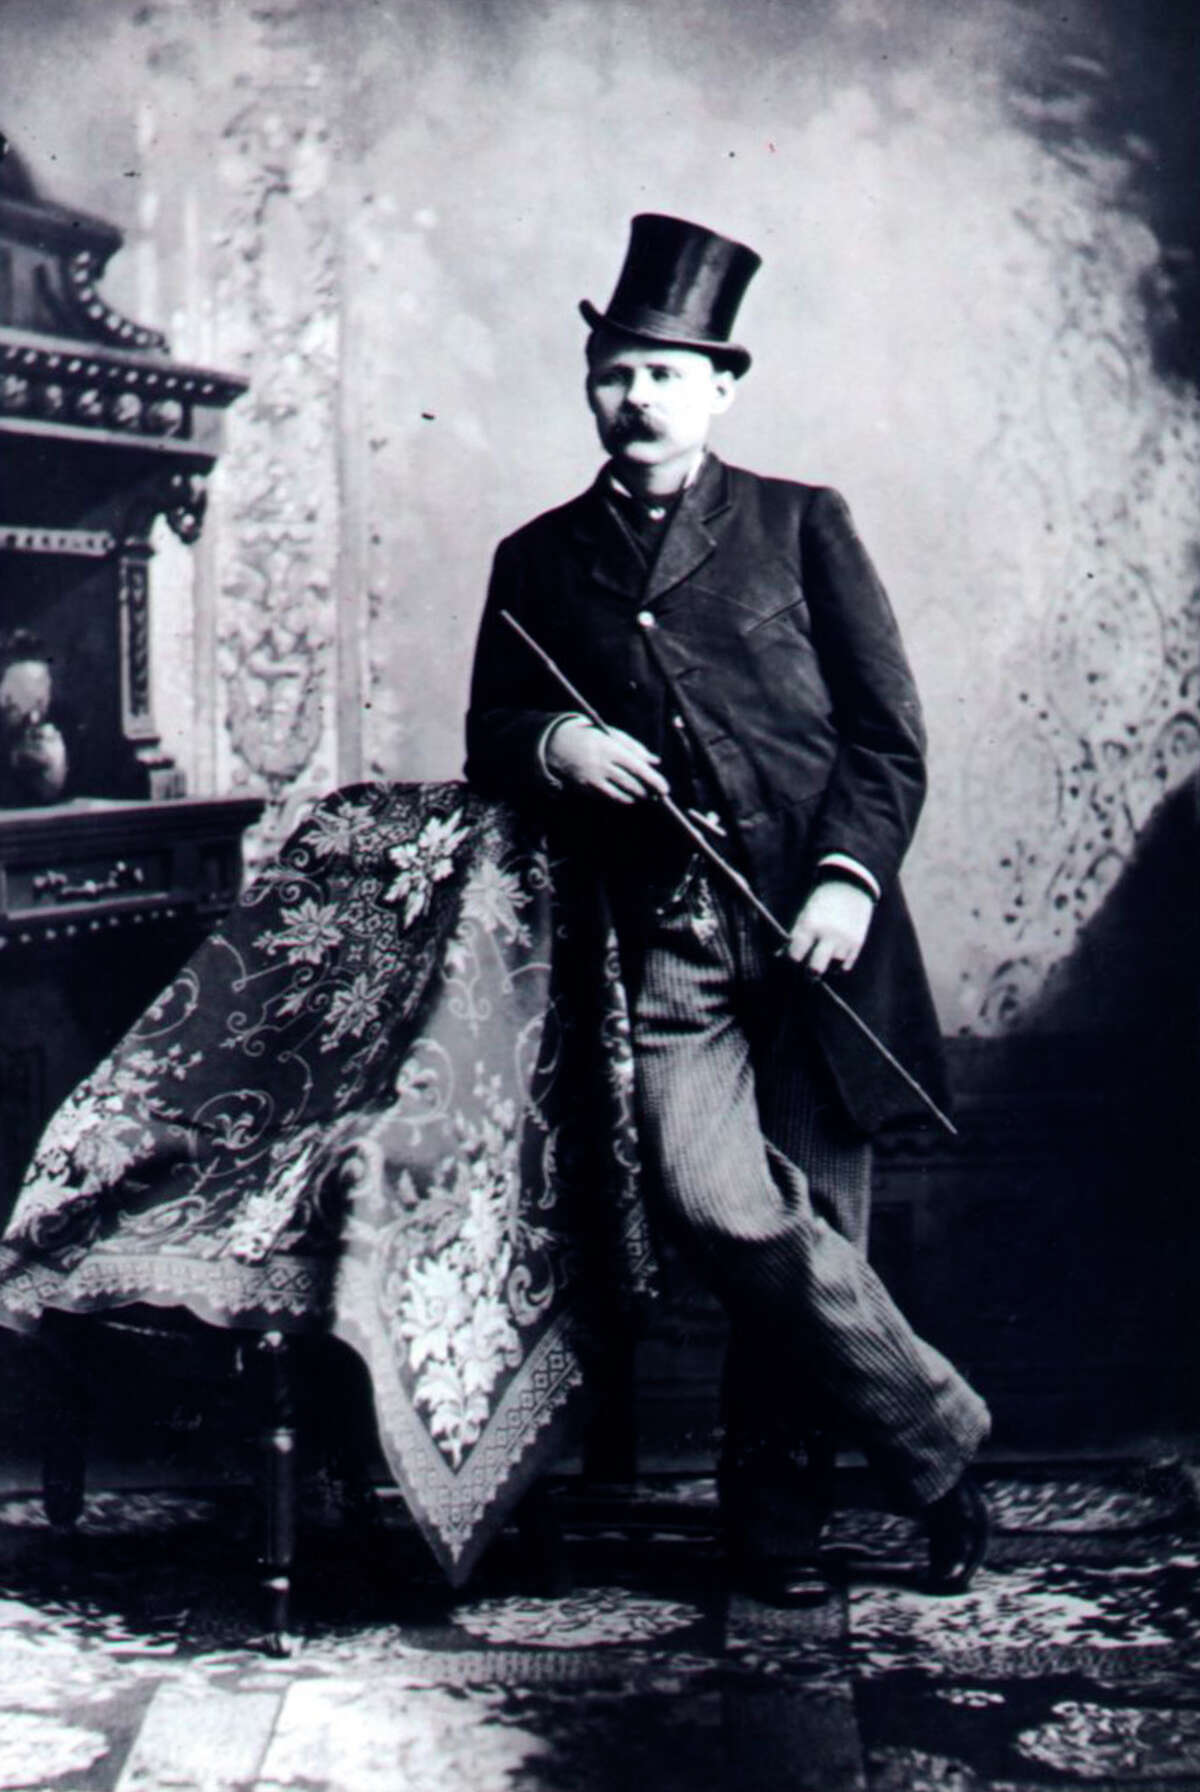 Ben Thompson, one of the most feared pistol fighters of his day, was killed in a San Antonio saloon on March 11, 1884.